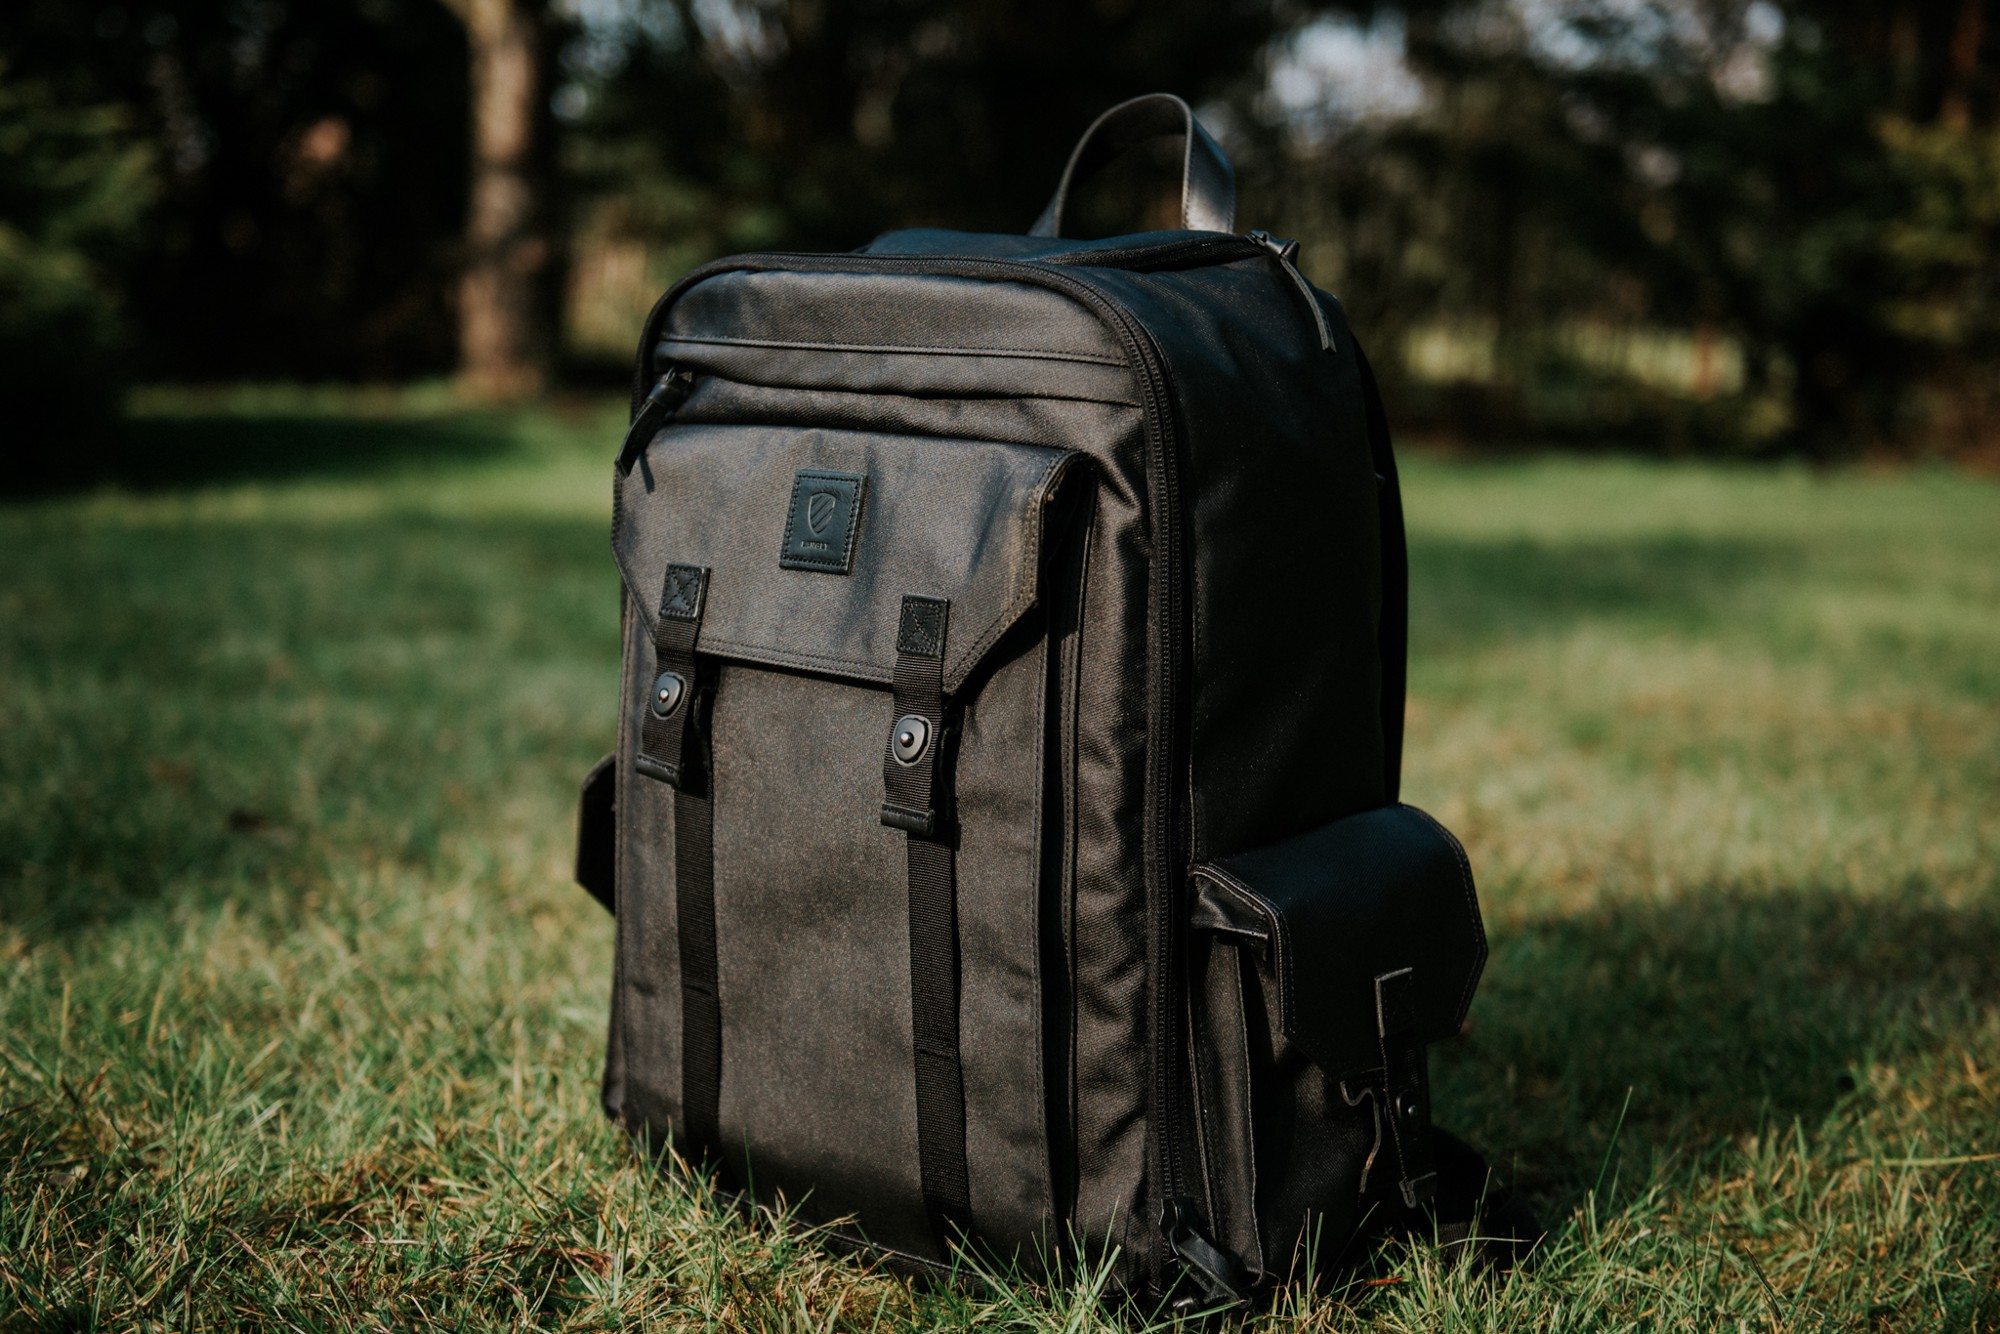 Langly Multipack Camera Bag Front View